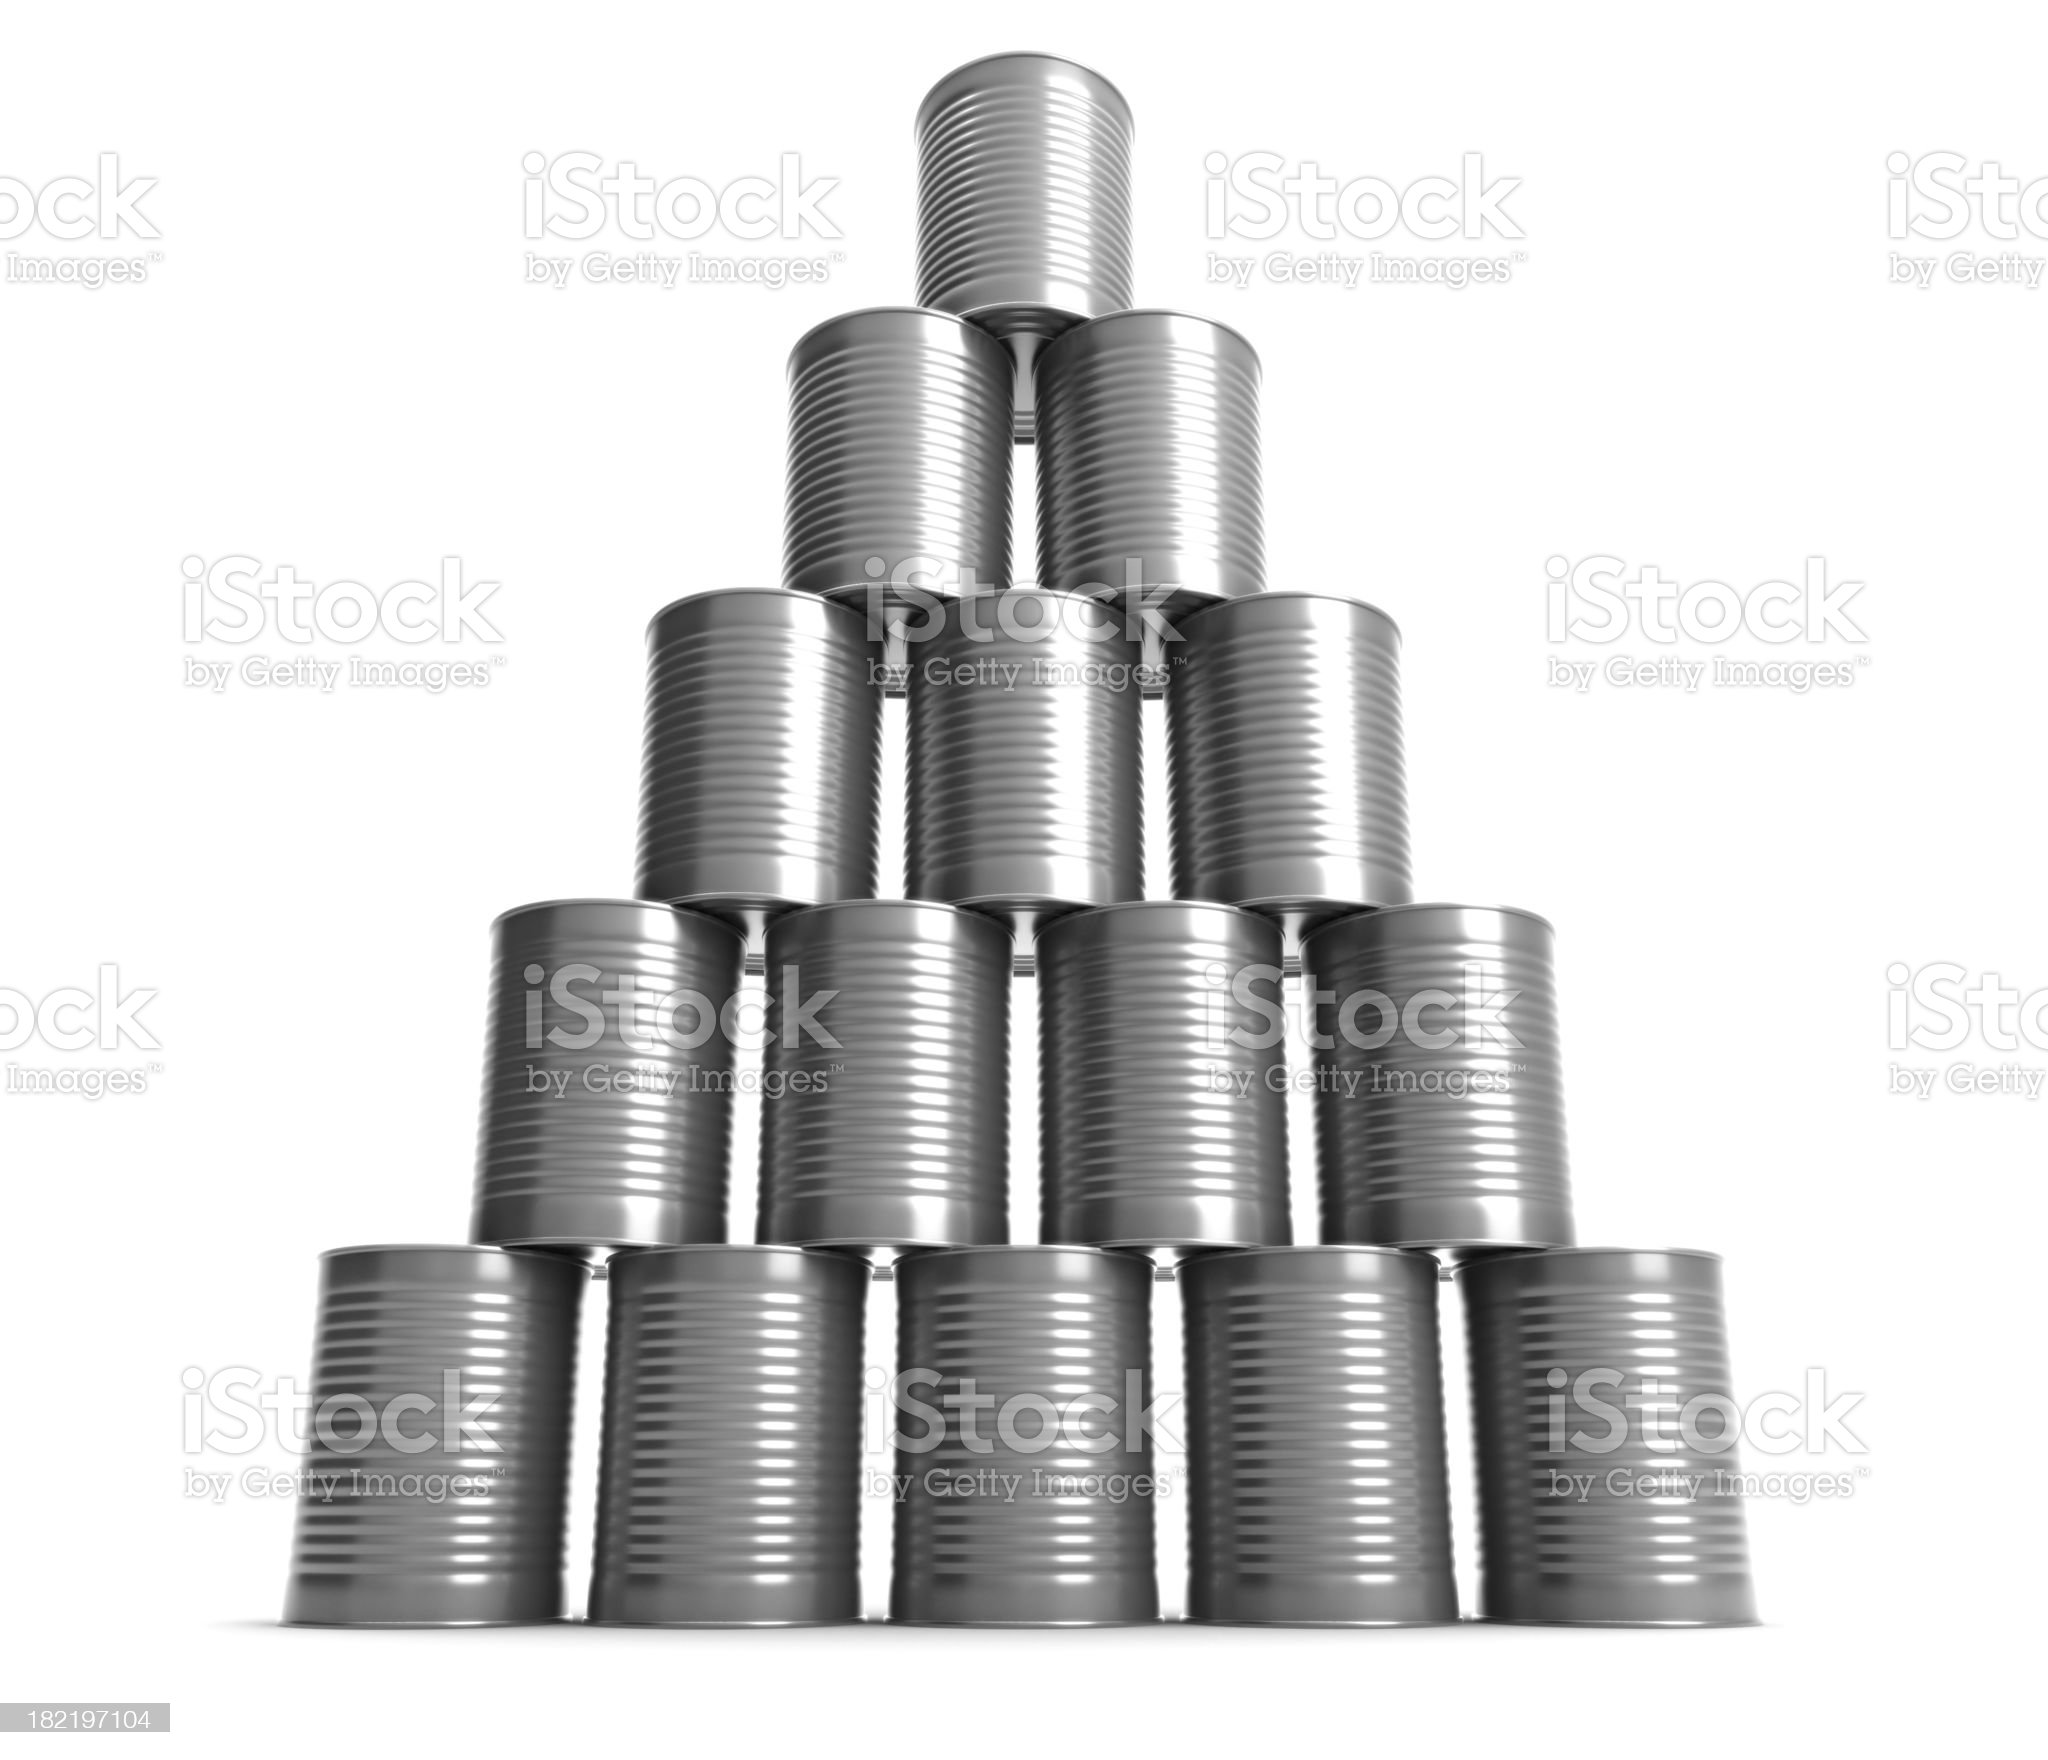 Arranged Metal Cans royalty-free stock photo